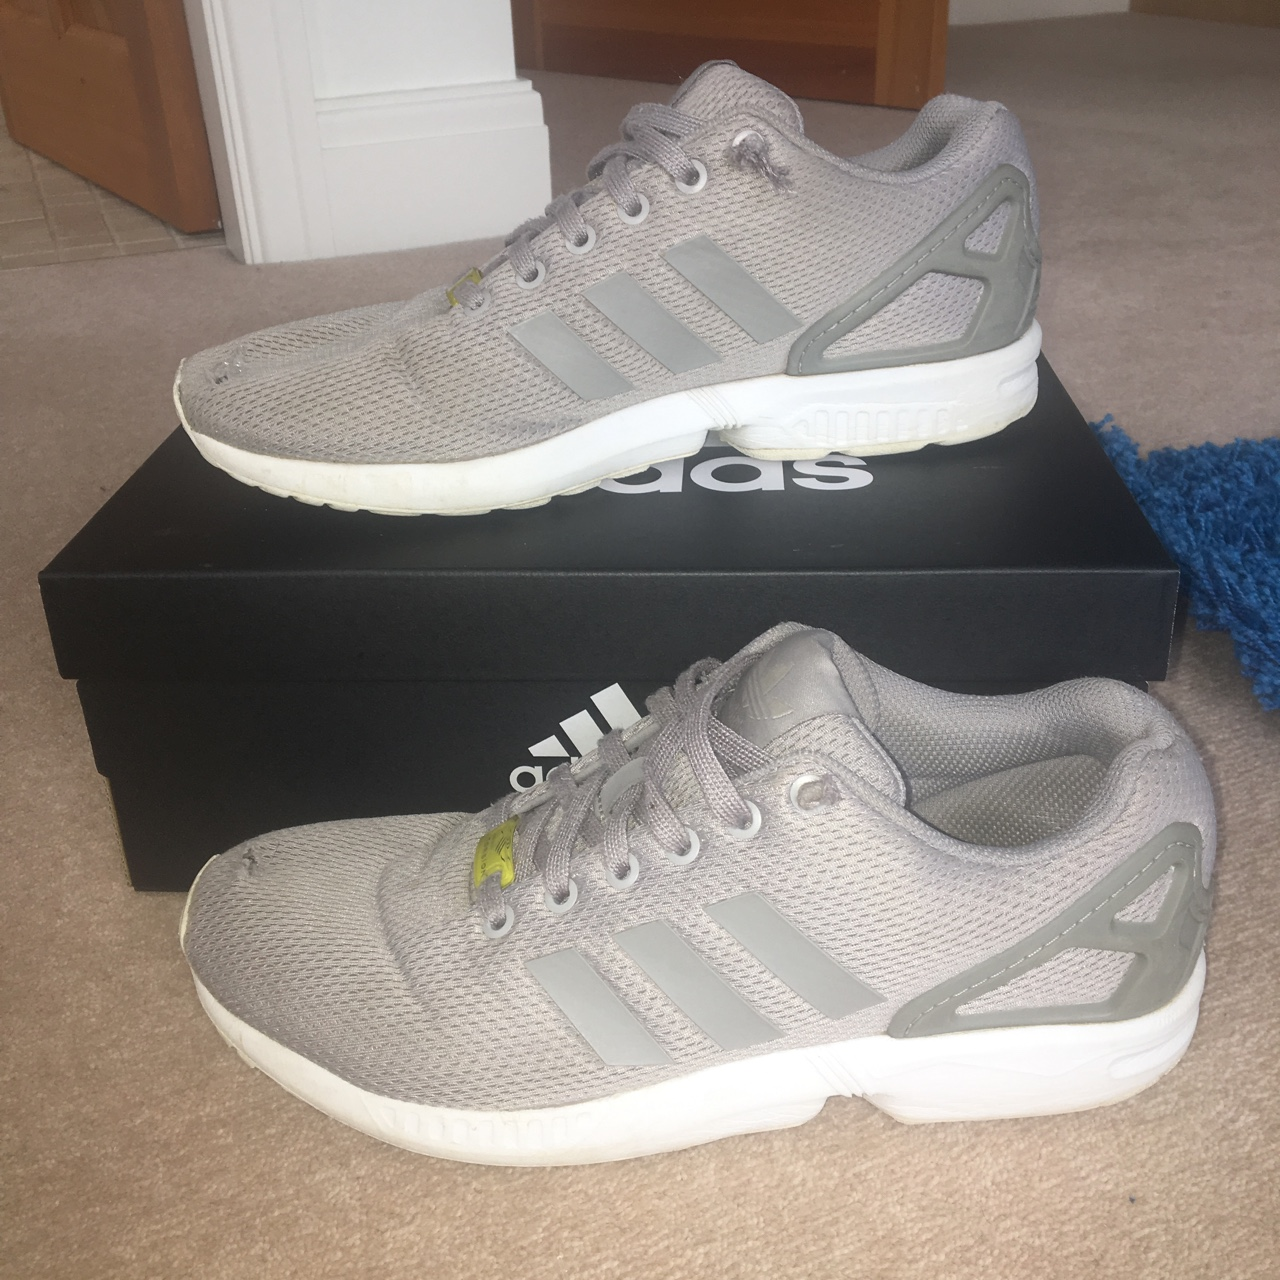 purchase cheap c24dc ec5b4 Adidas Zx flux 6/10 condition Holes by big toe - Depop